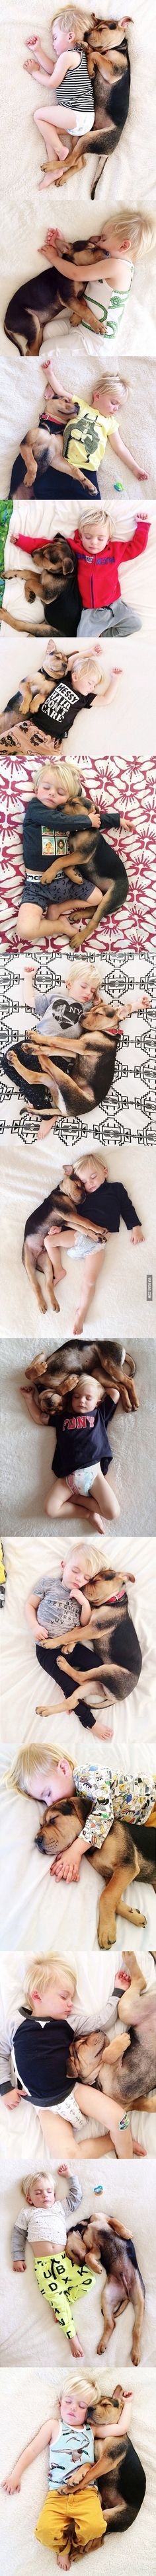 A toddler and his puppy continue napping together.... this is one of the cutest…